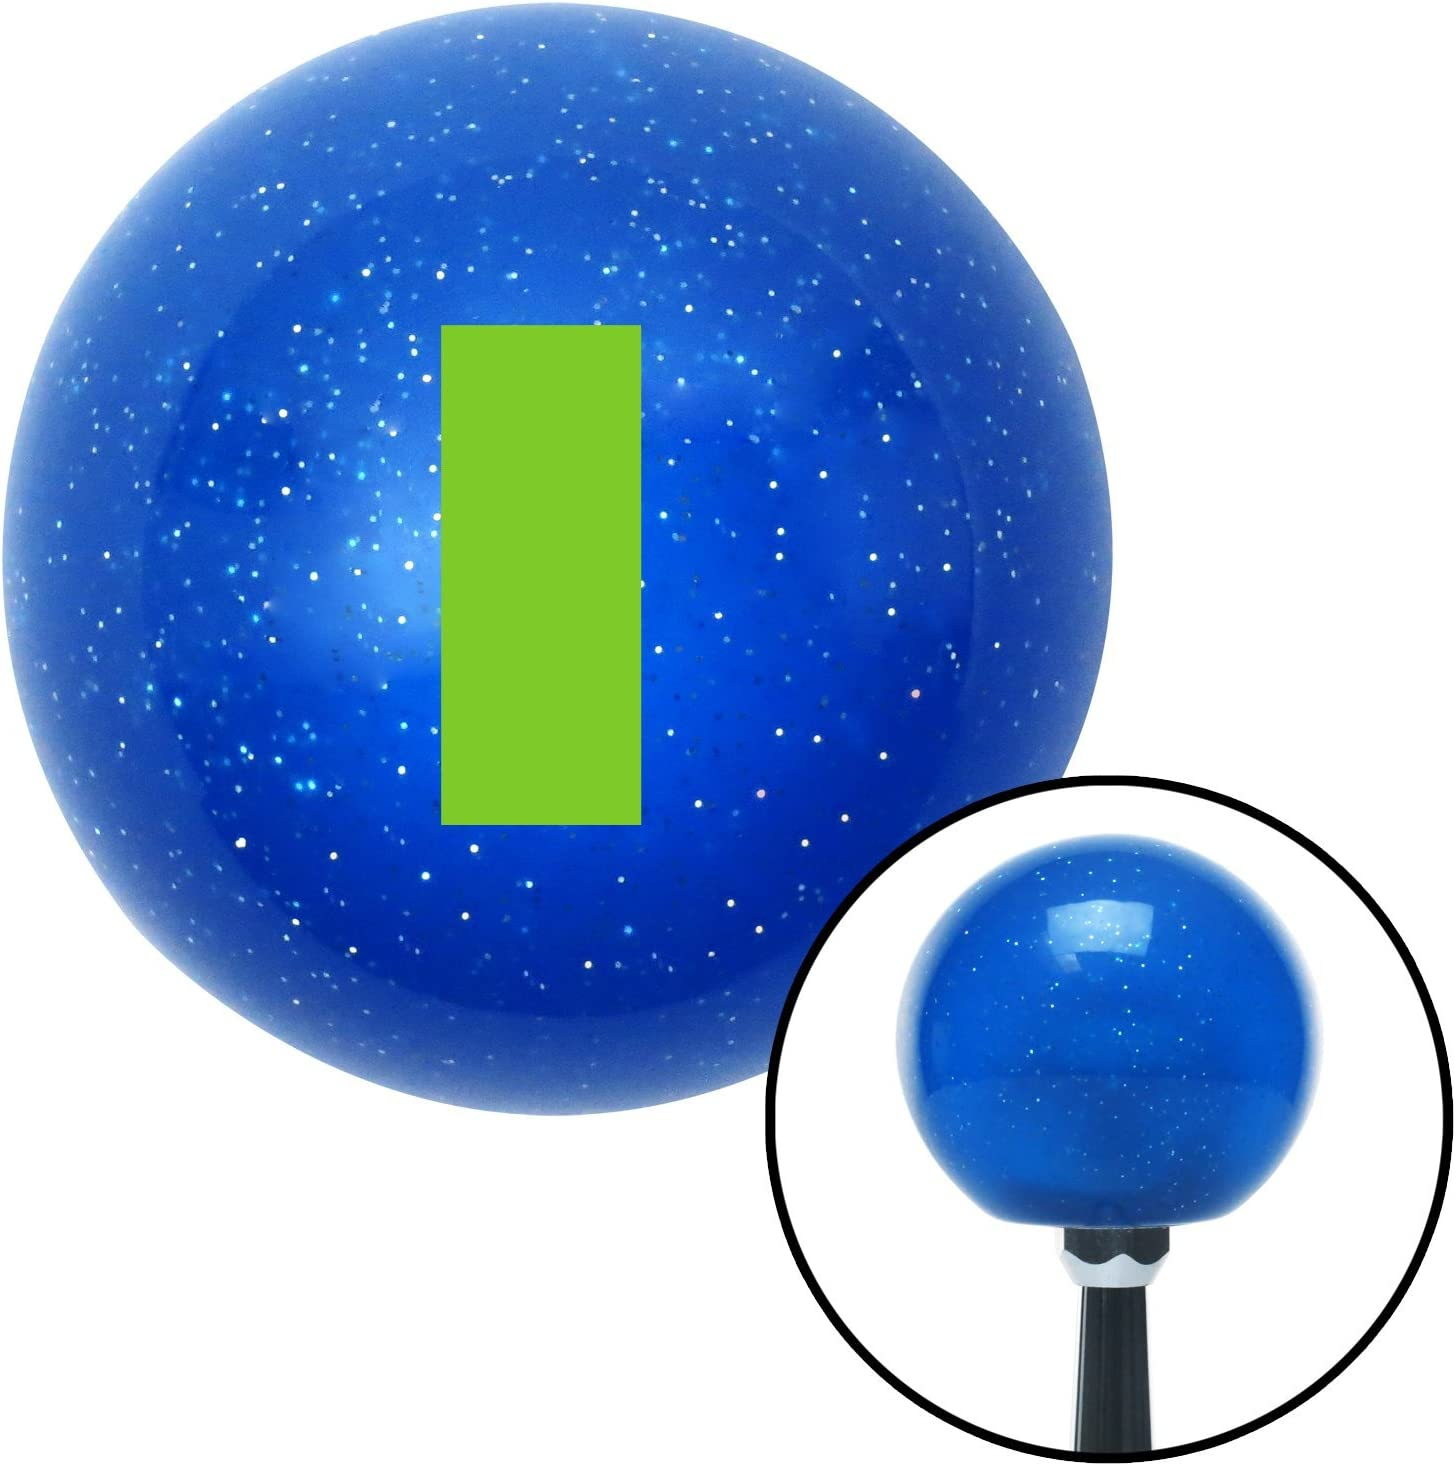 Green Officer 01 and 02 American Shifter 25986 Blue Metal Flake Shift Knob